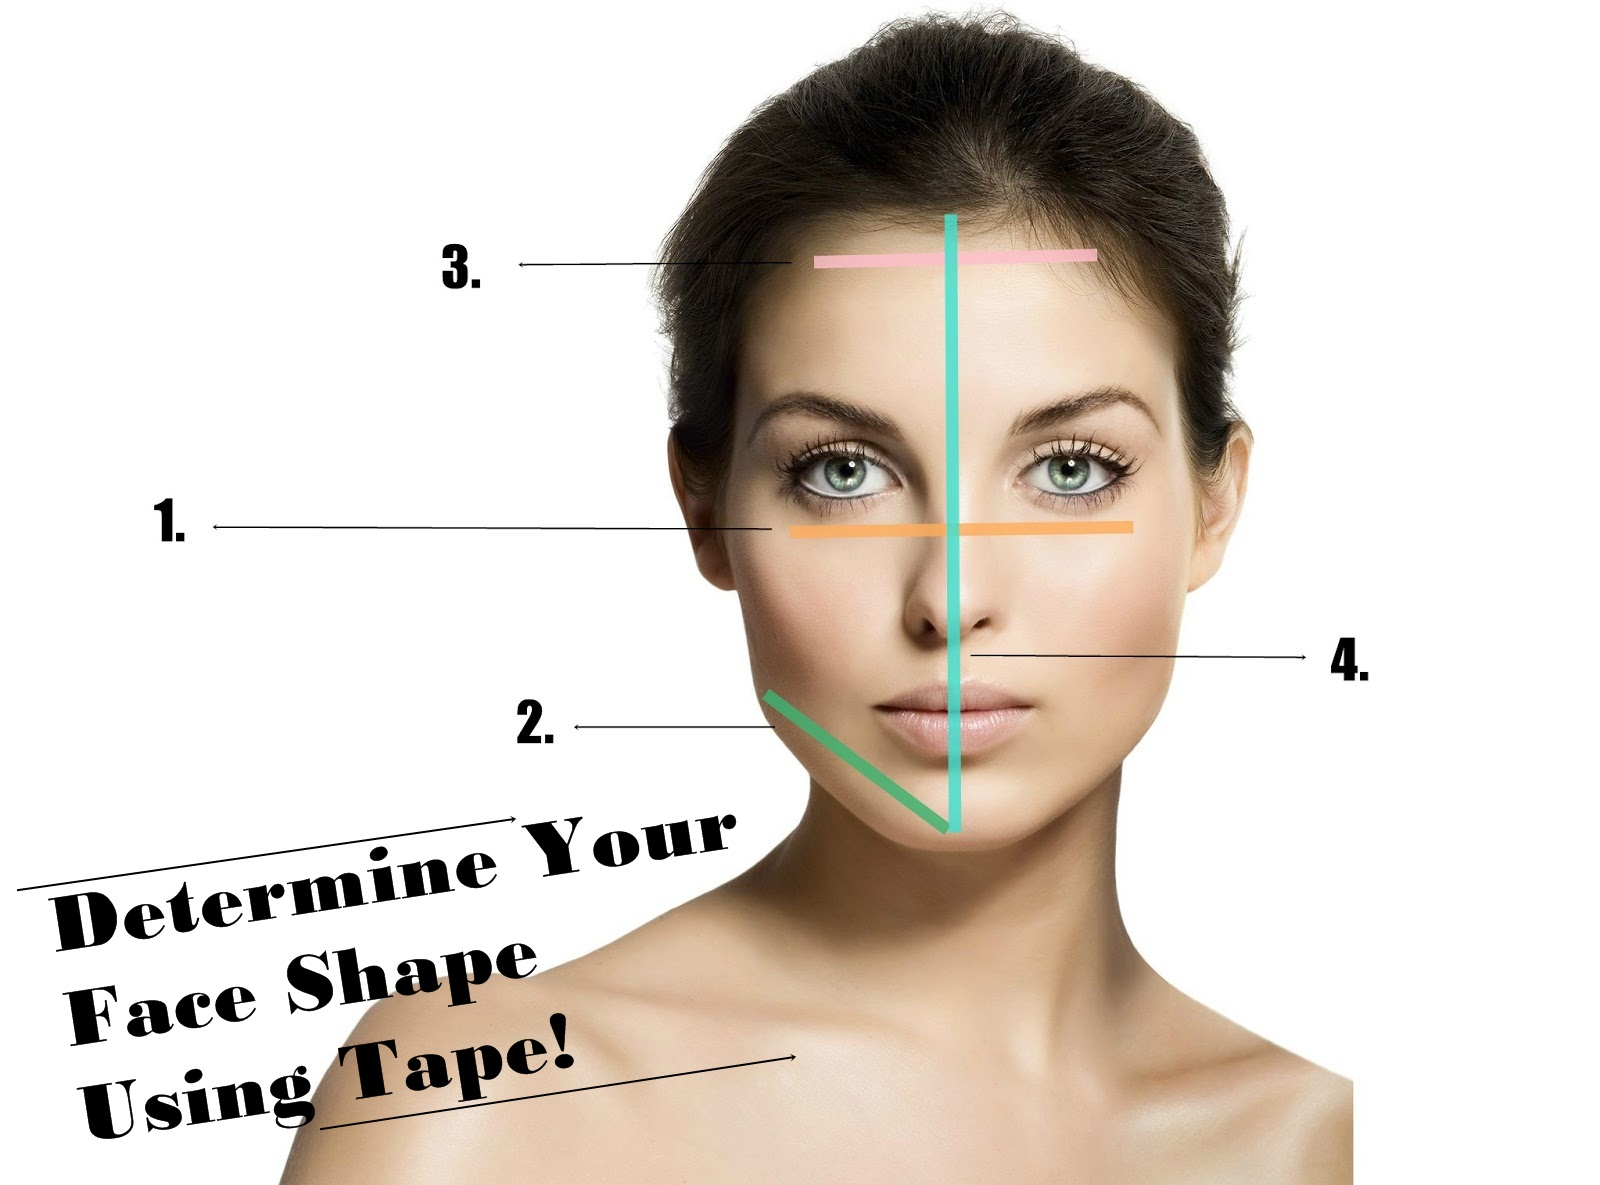 how to determine face shape It's similar to an oblong face but with a softer chin and more curve to the sides of the face celebs with your face shape: kelly rowland, olivia munn, kerry washington, blake lively next up: how to apply blush for your face shape this story was originally published on april 16, 2014, and has since been updated.